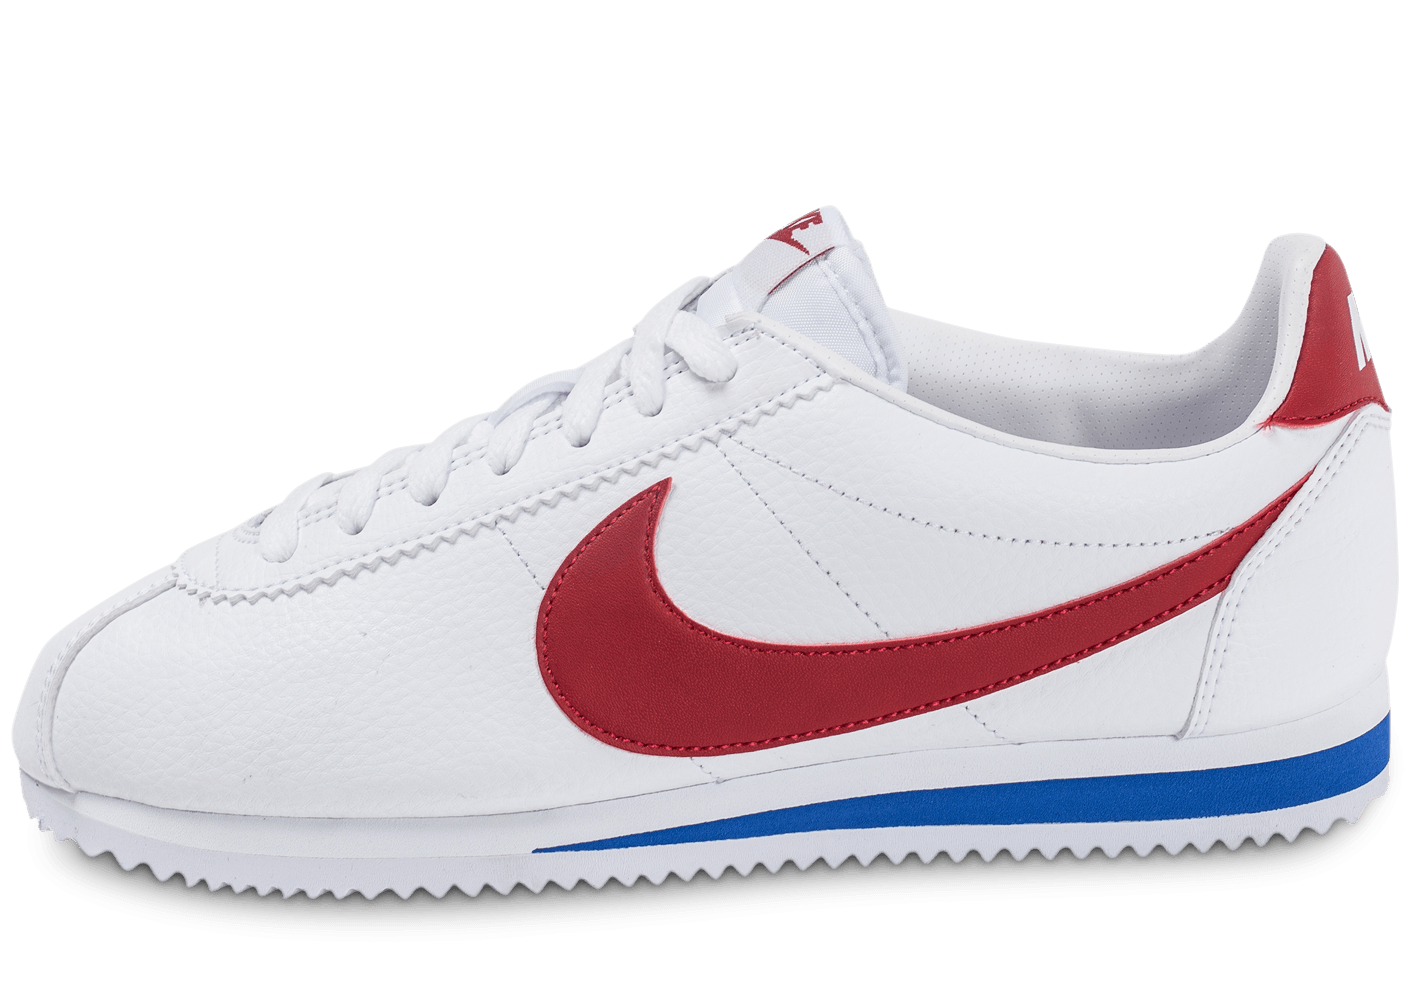 nike cortez leather blanche rouge et bleue chaussures baskets homme chausport. Black Bedroom Furniture Sets. Home Design Ideas